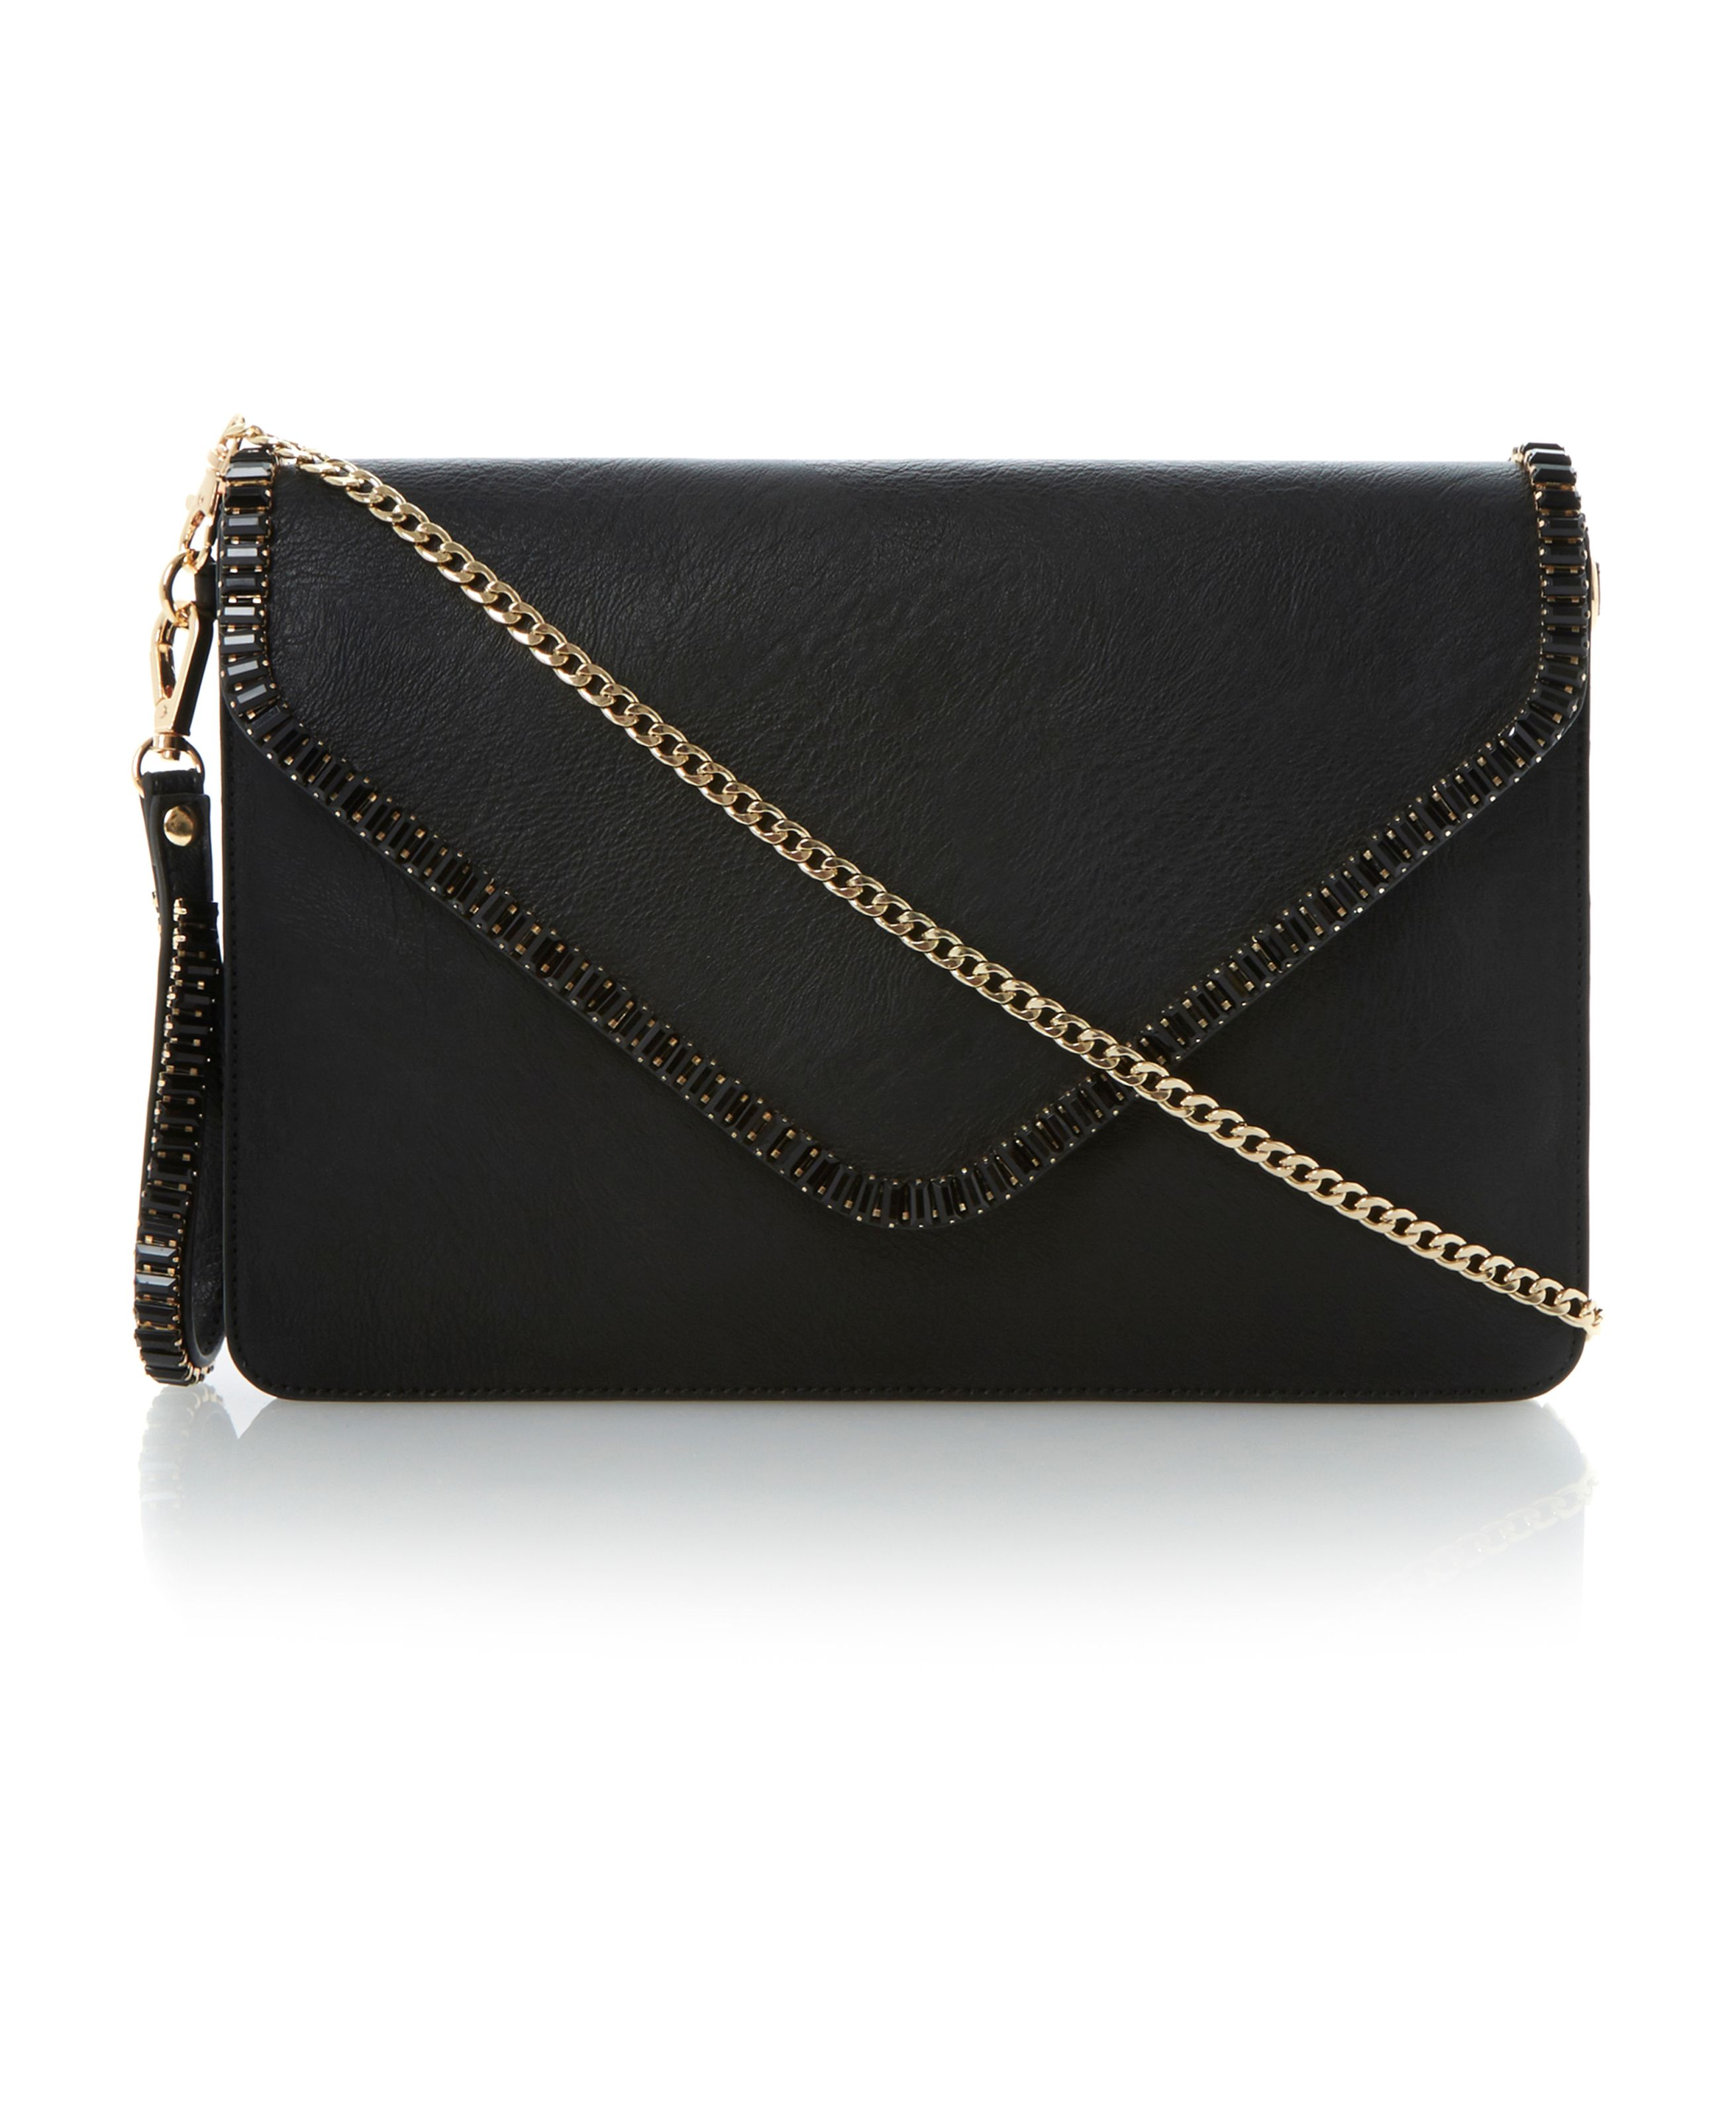 Egemmy clutch bag